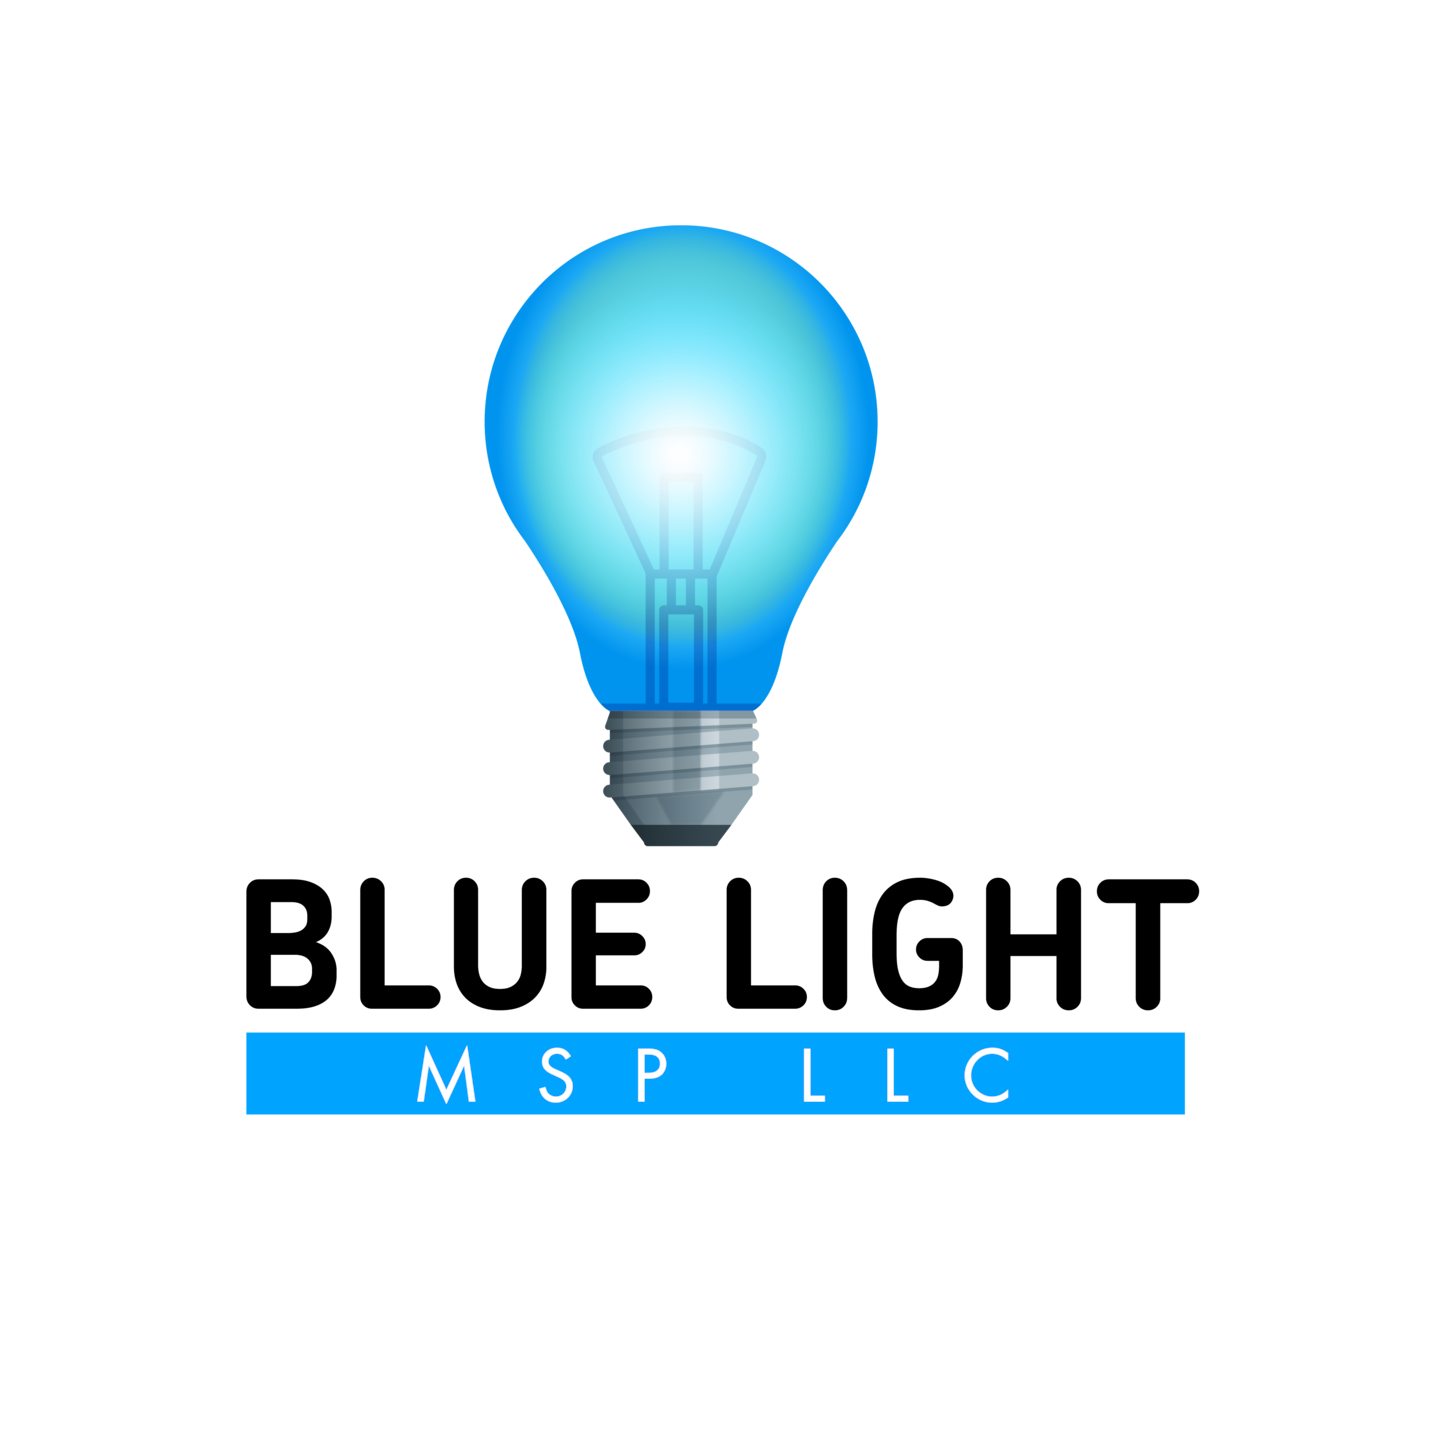 Blue Light MSP LLC